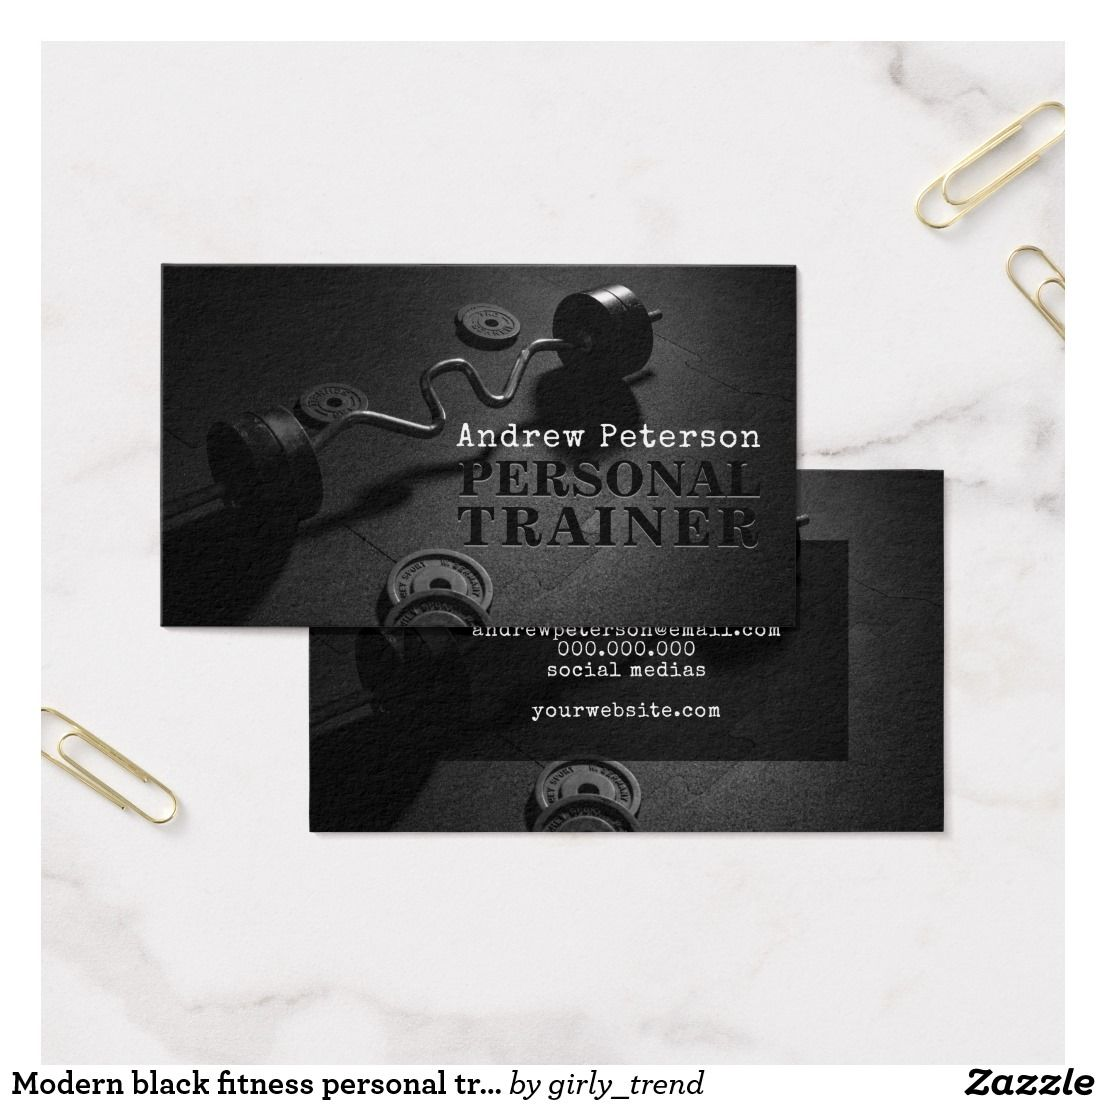 Modern black fitness personal trainer workout business card | Black ...